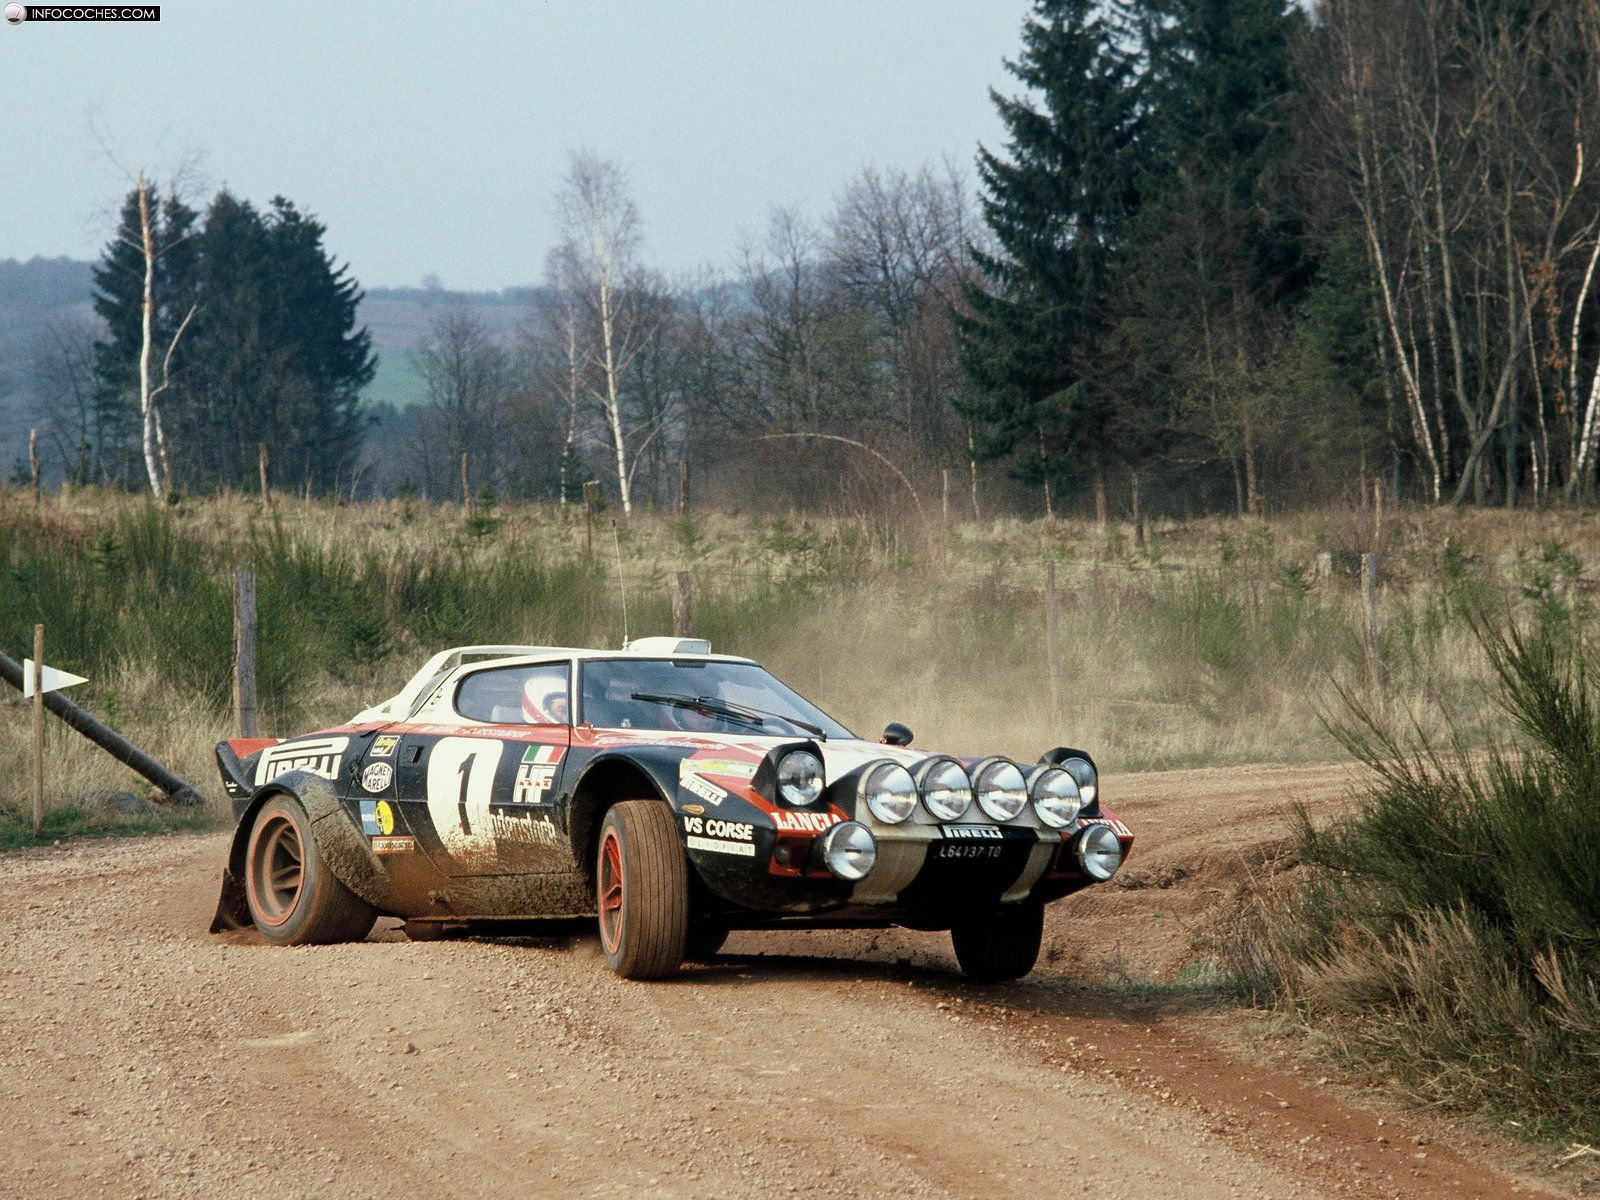 What is your favourite rally car? I have a soft spot for the Lancia ...